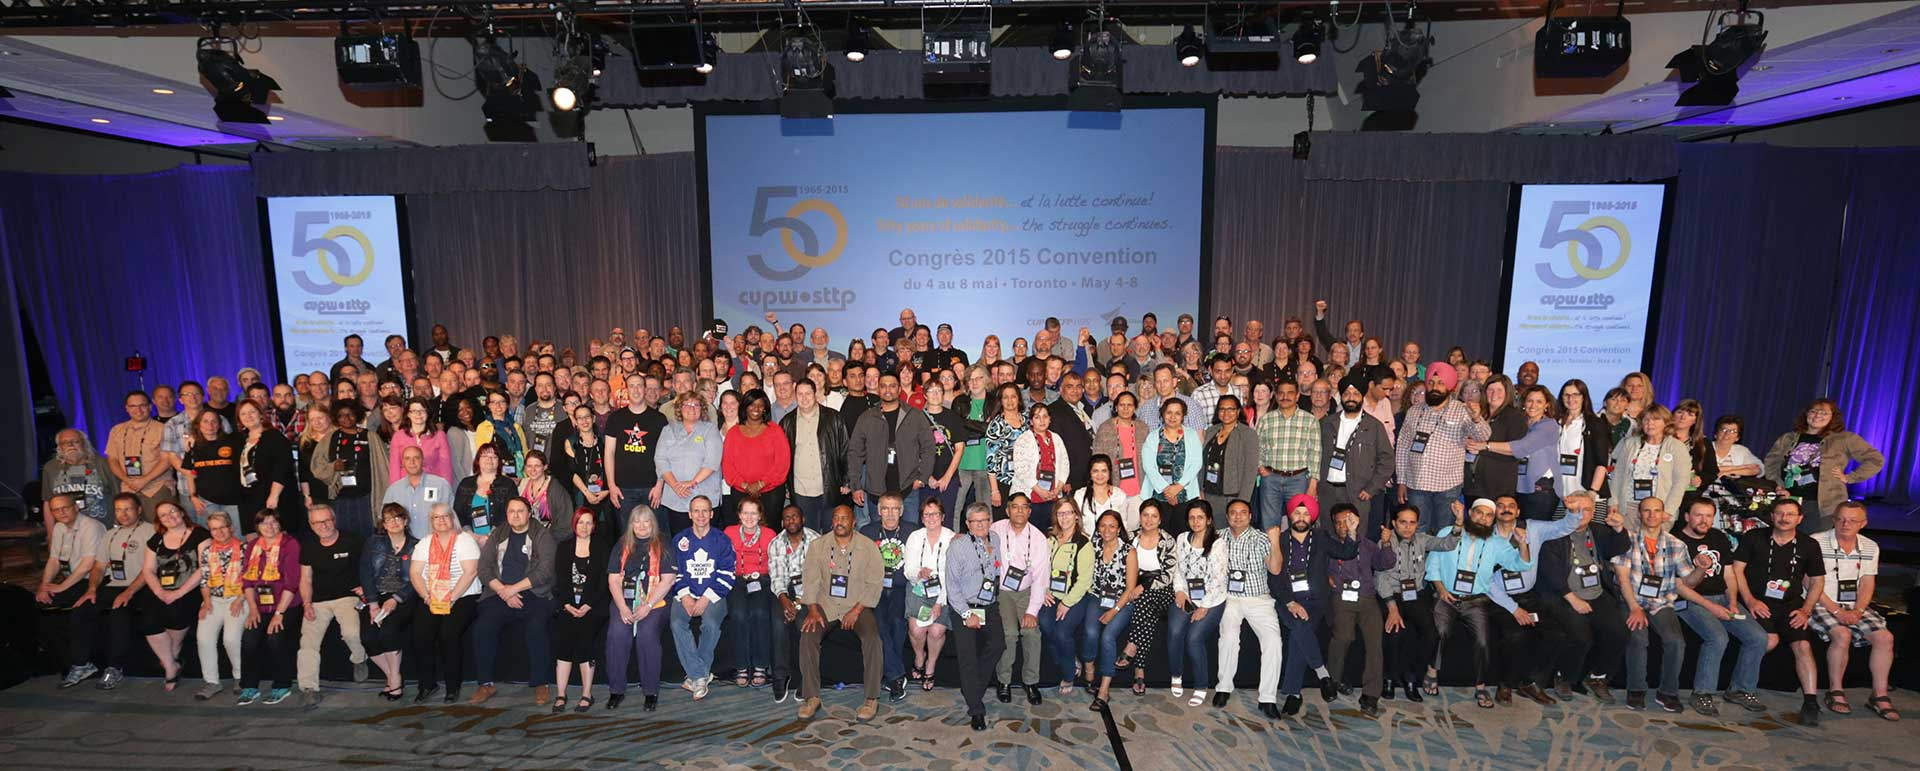 National and Regional representatives elected at the CUPW 2015 National Convention